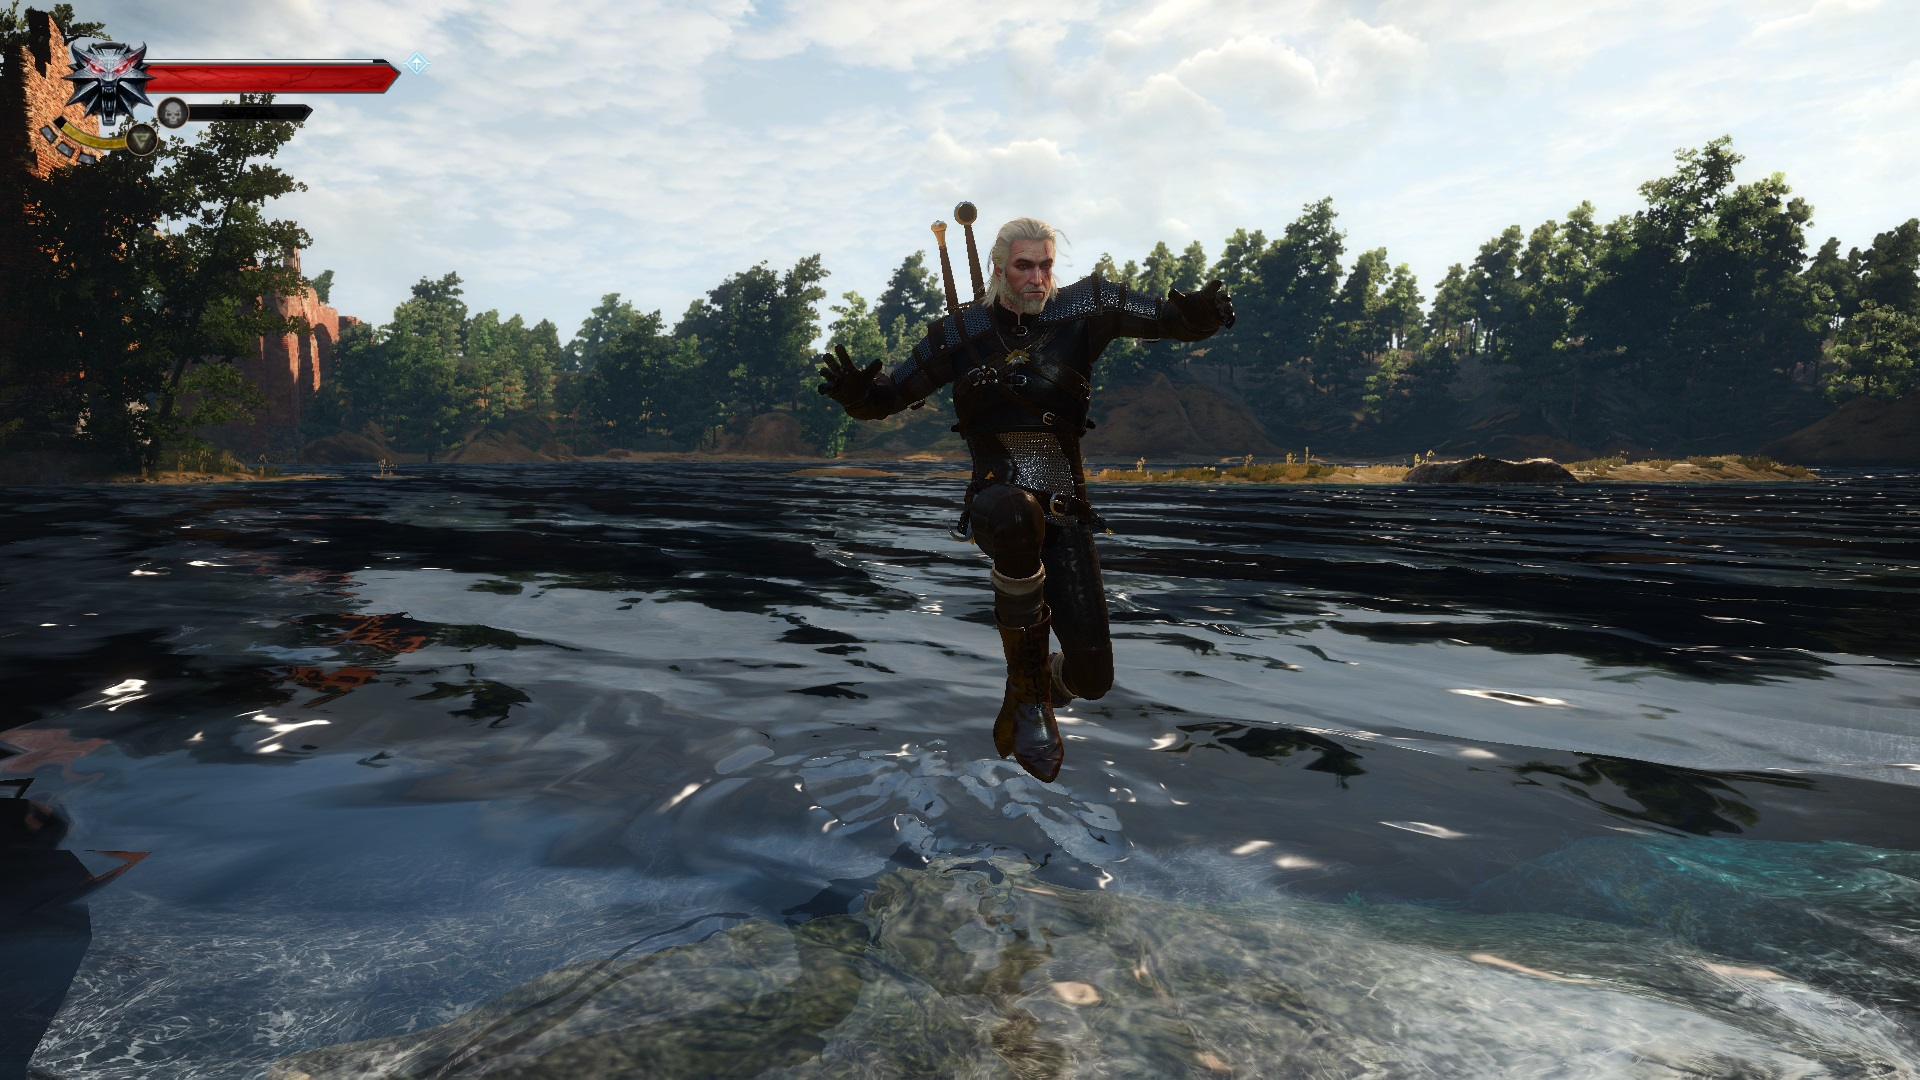 Best Witcher 3 Mods - Jump in shallow water